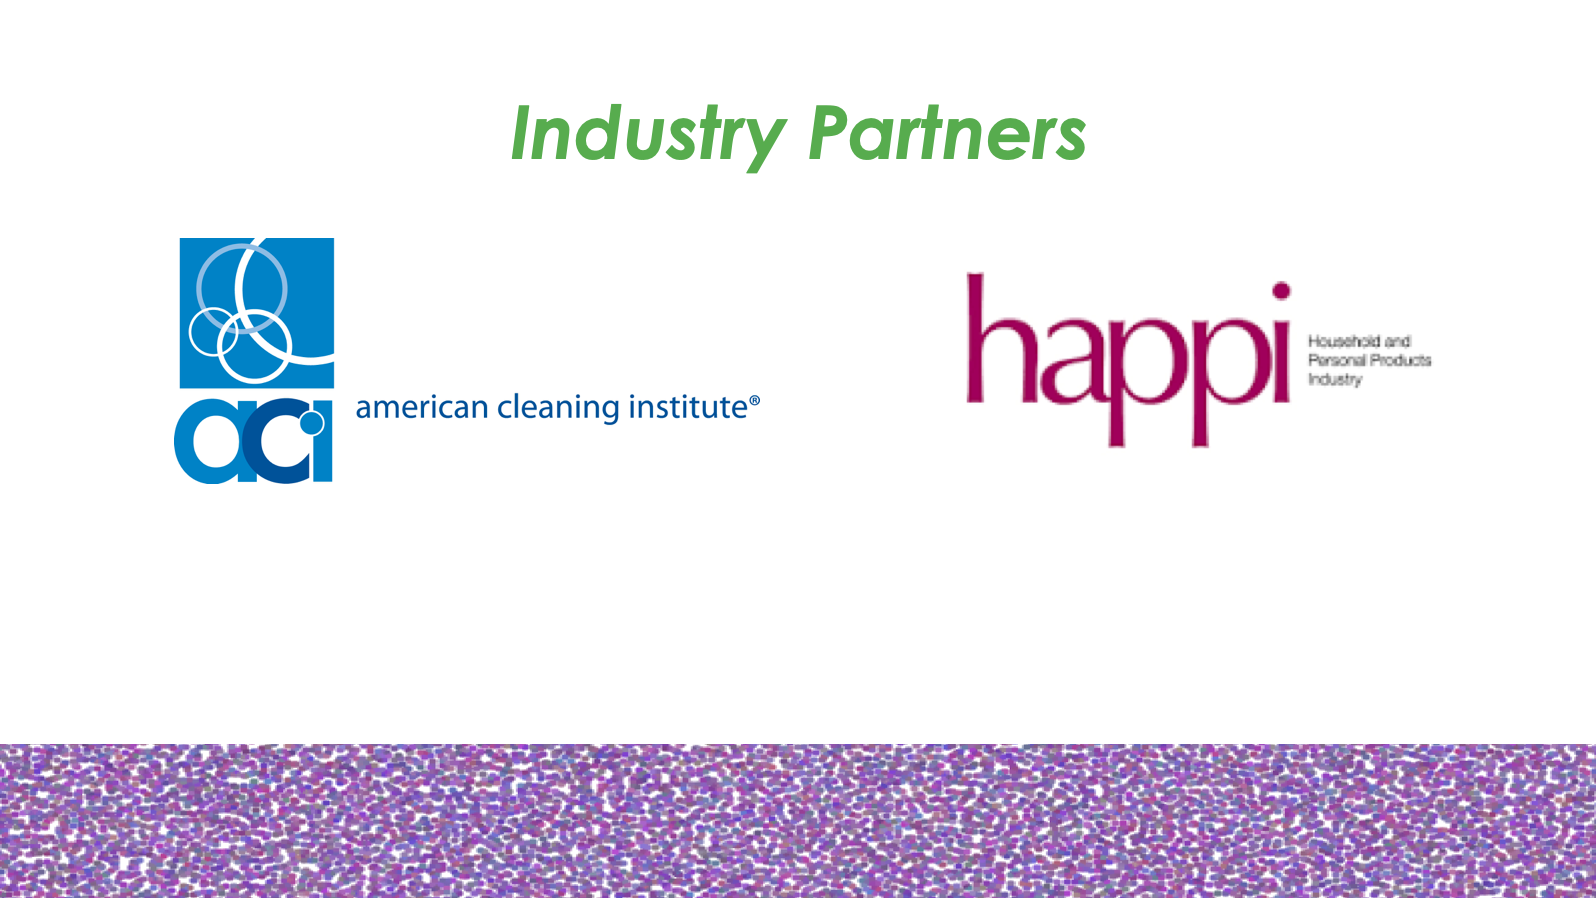 Industry Partners slider